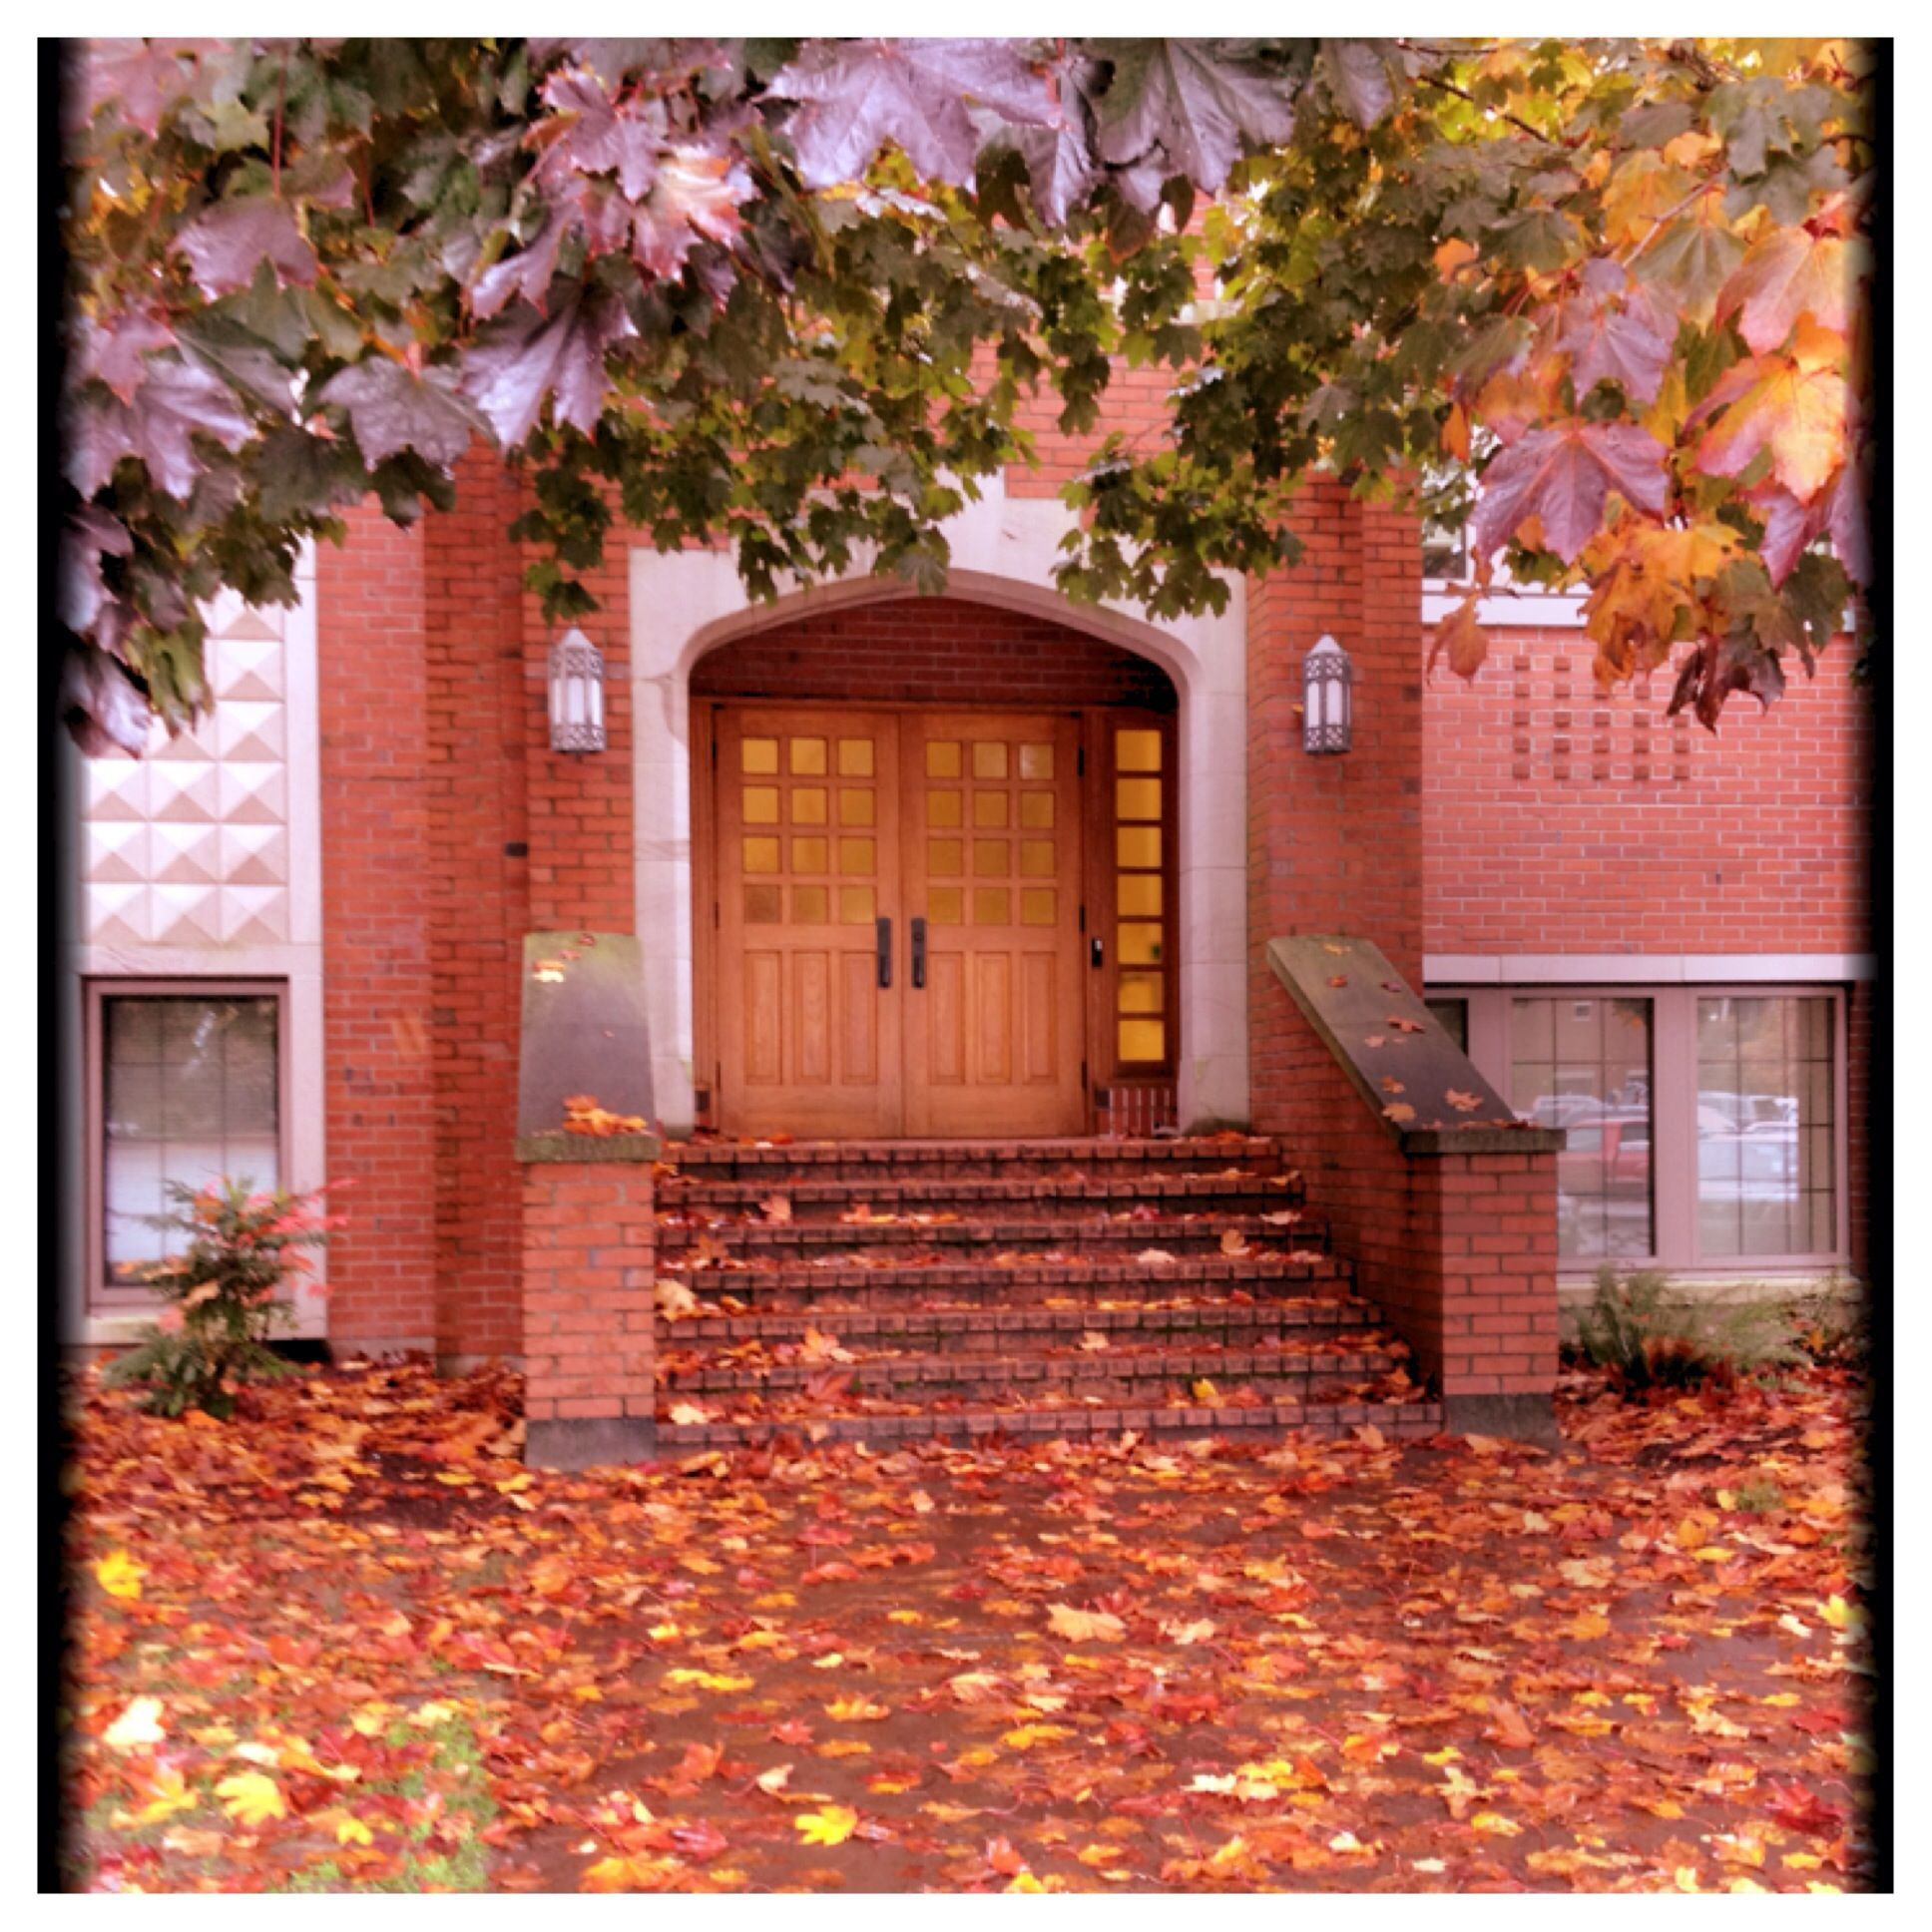 Fall at university of puget sound with images puget